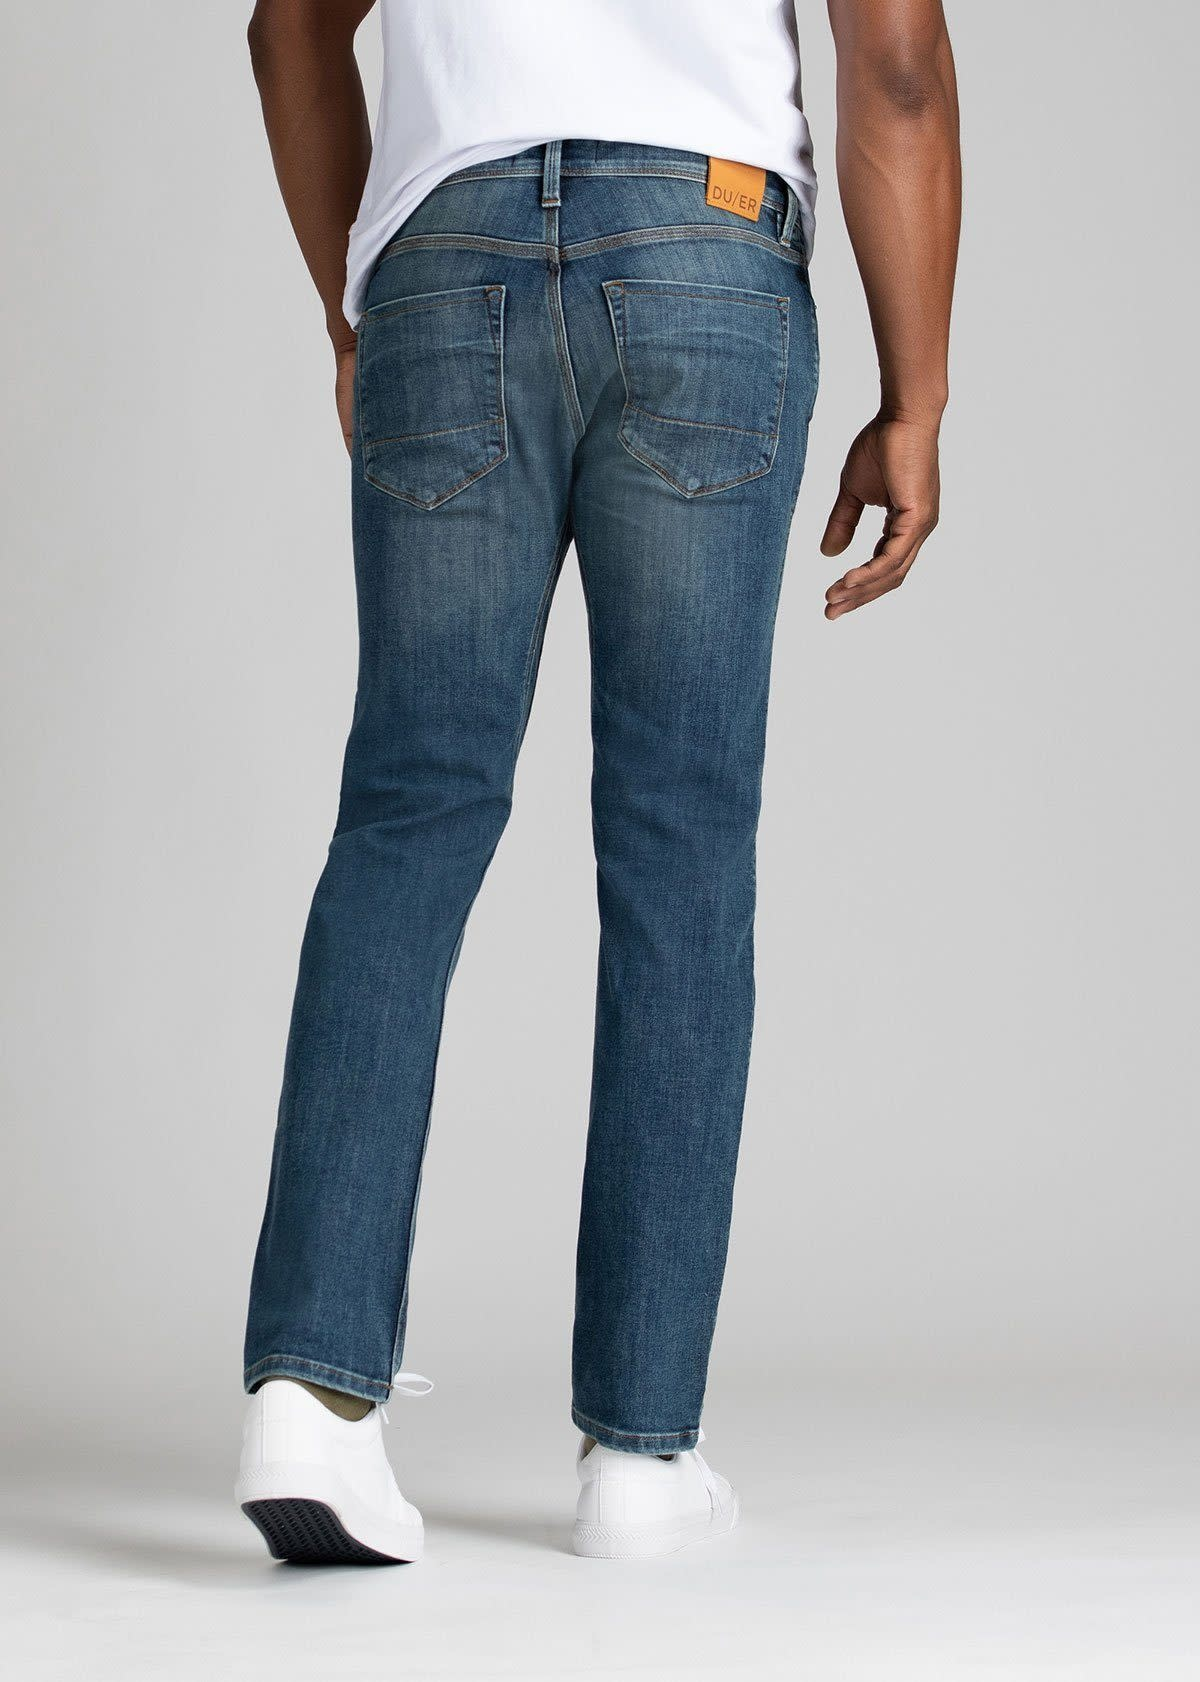 DUER Performance Denim Slim-2